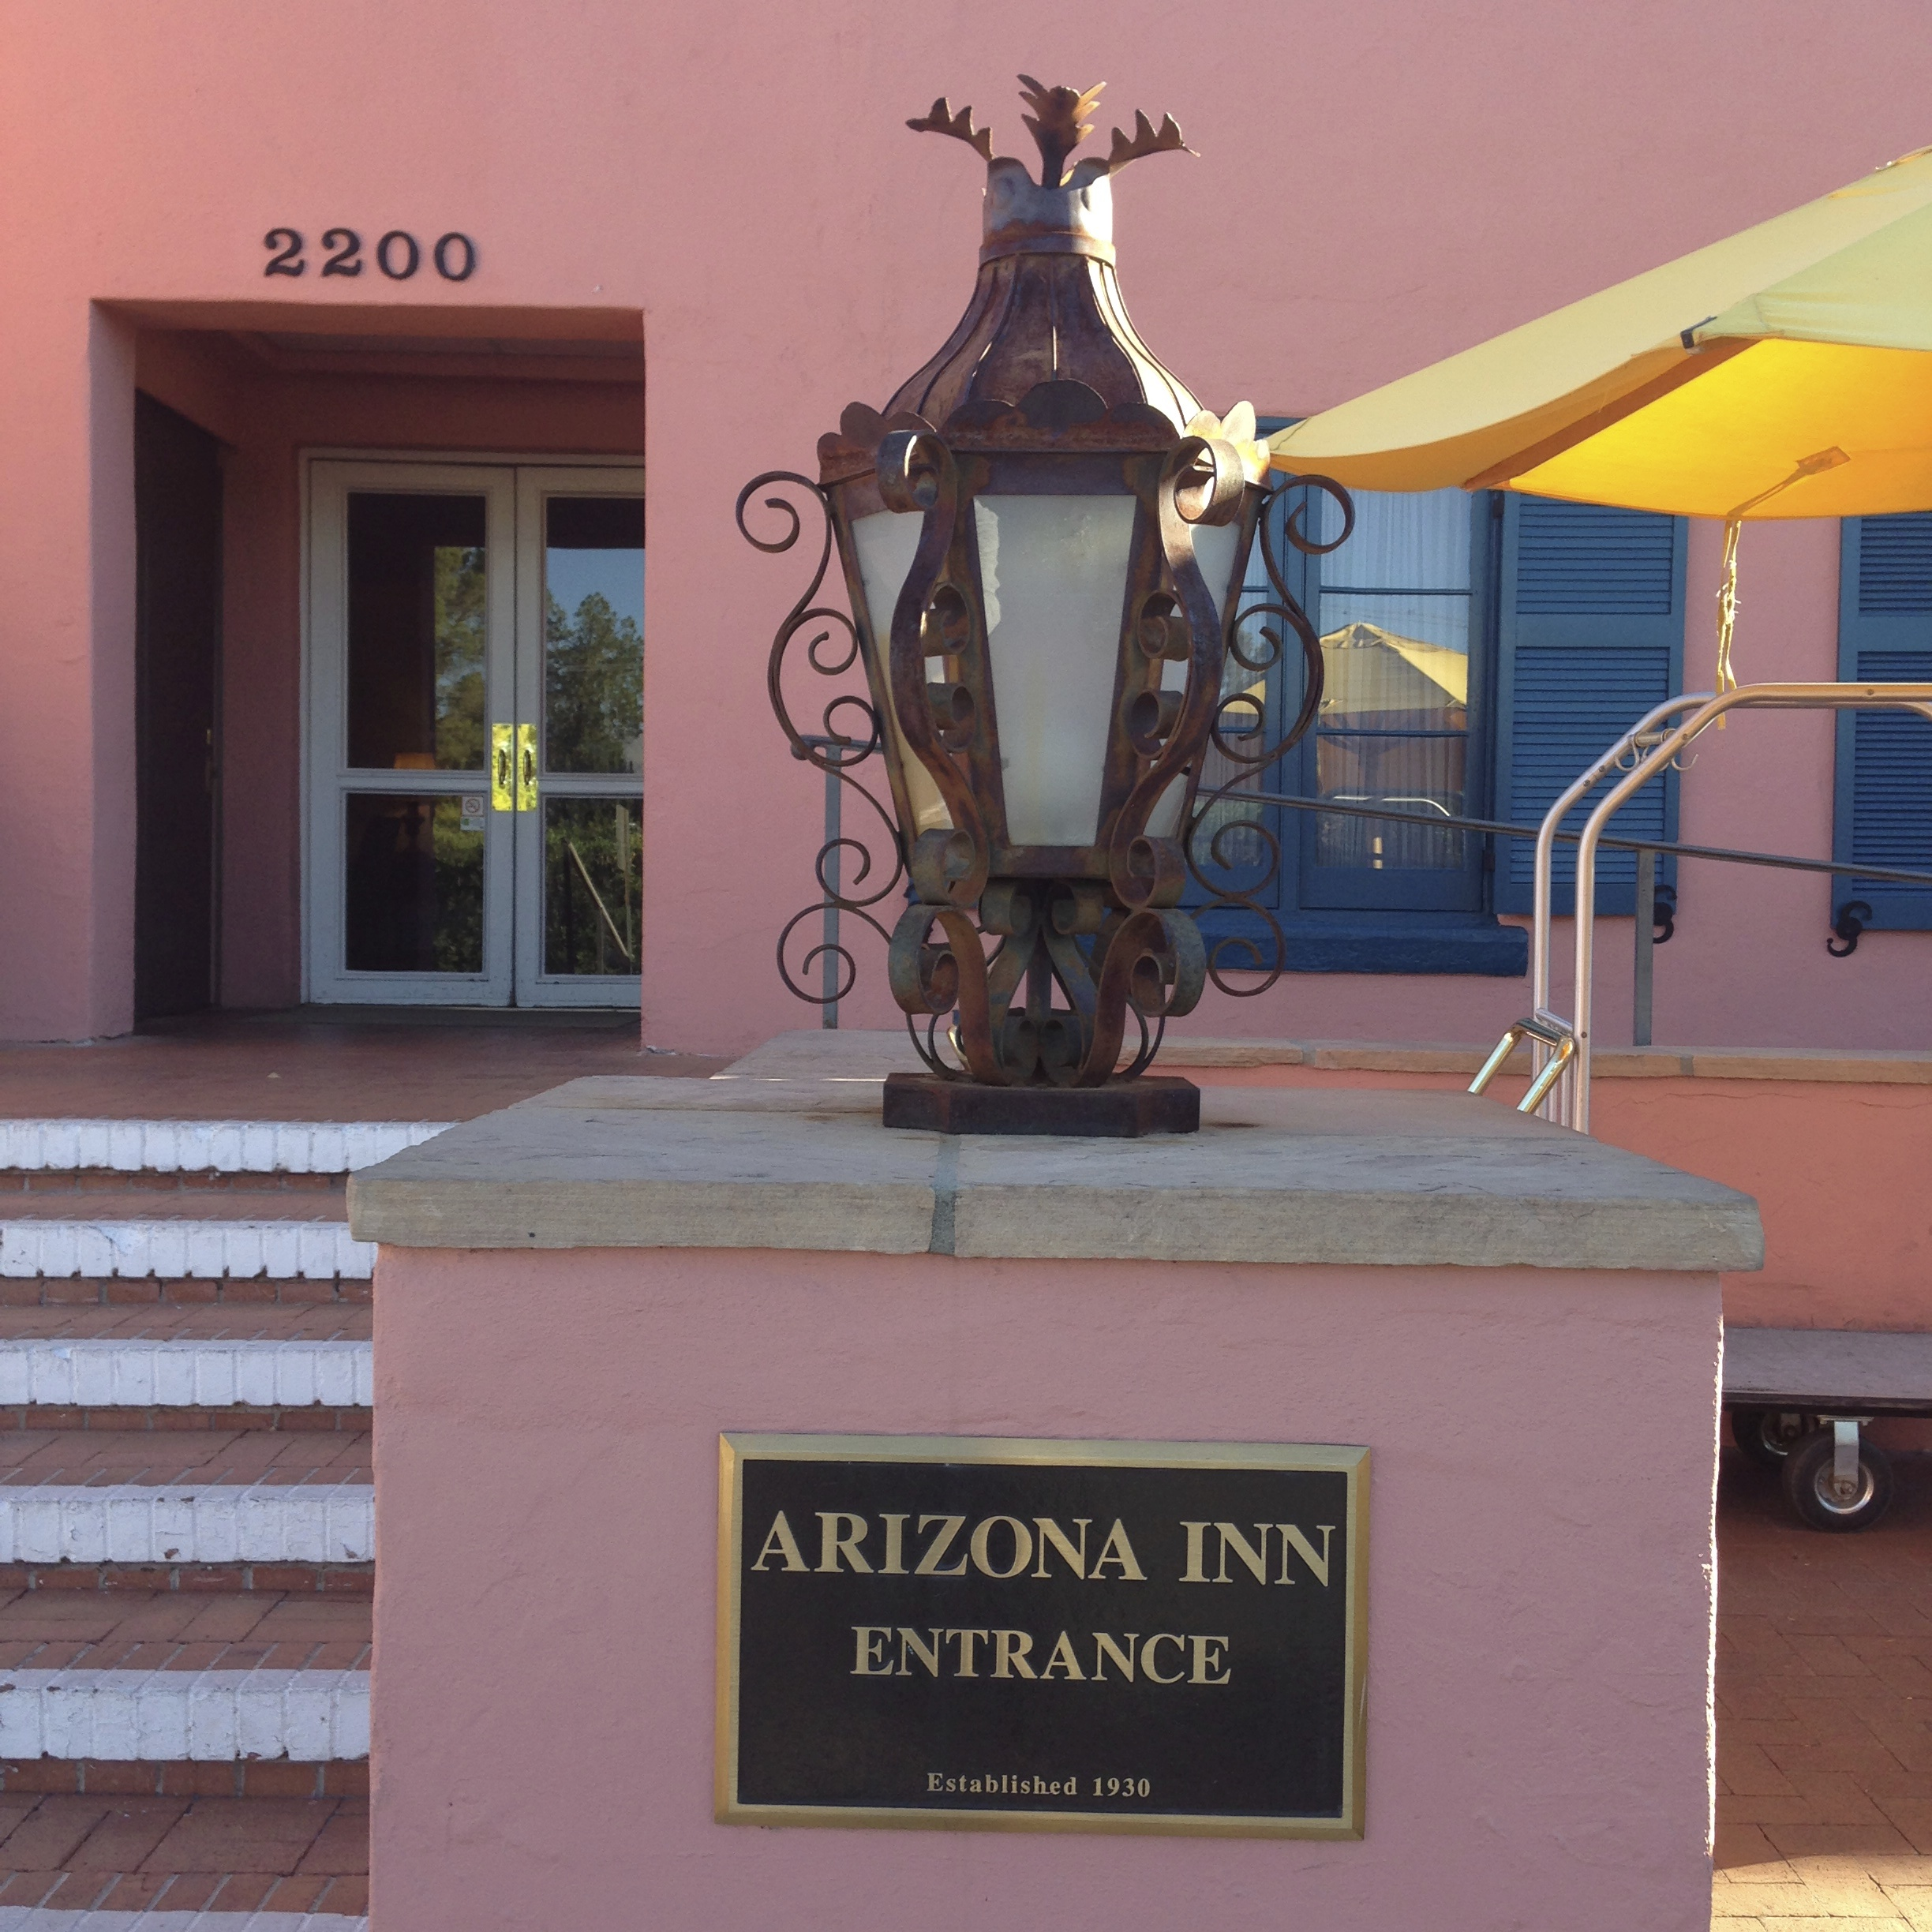 The historic Arizona Inn opened in 1930 and served as a hot spot for celebrities and politicians of the time.